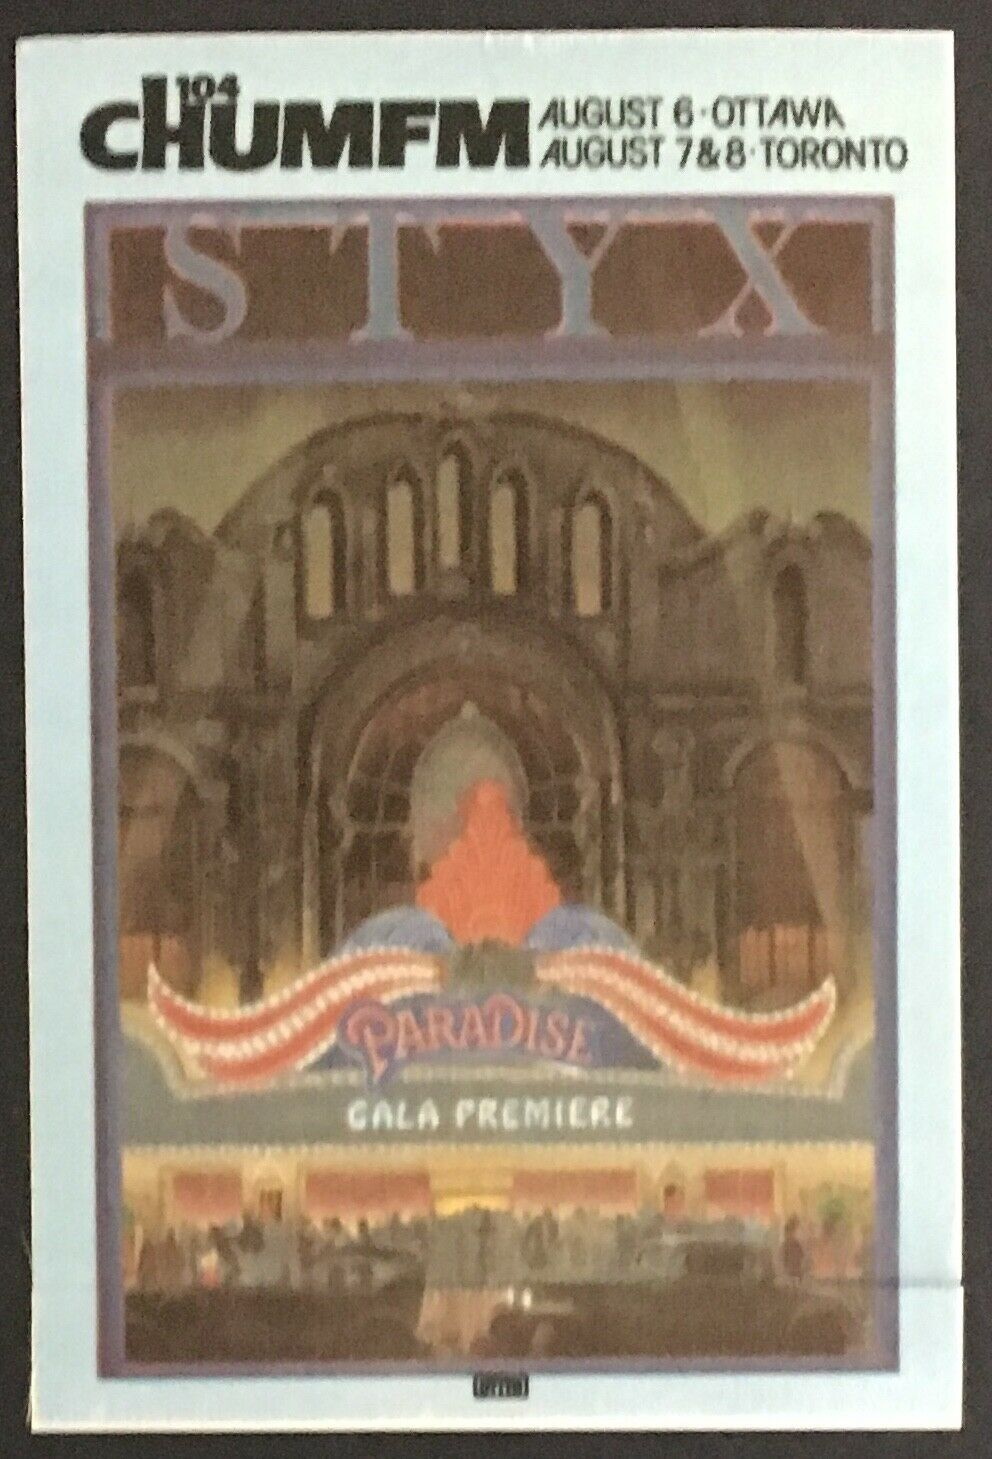 Vtg 1981 STYX Rock Band Concert Tour Decal Patch Paradise Gala Premiere Music